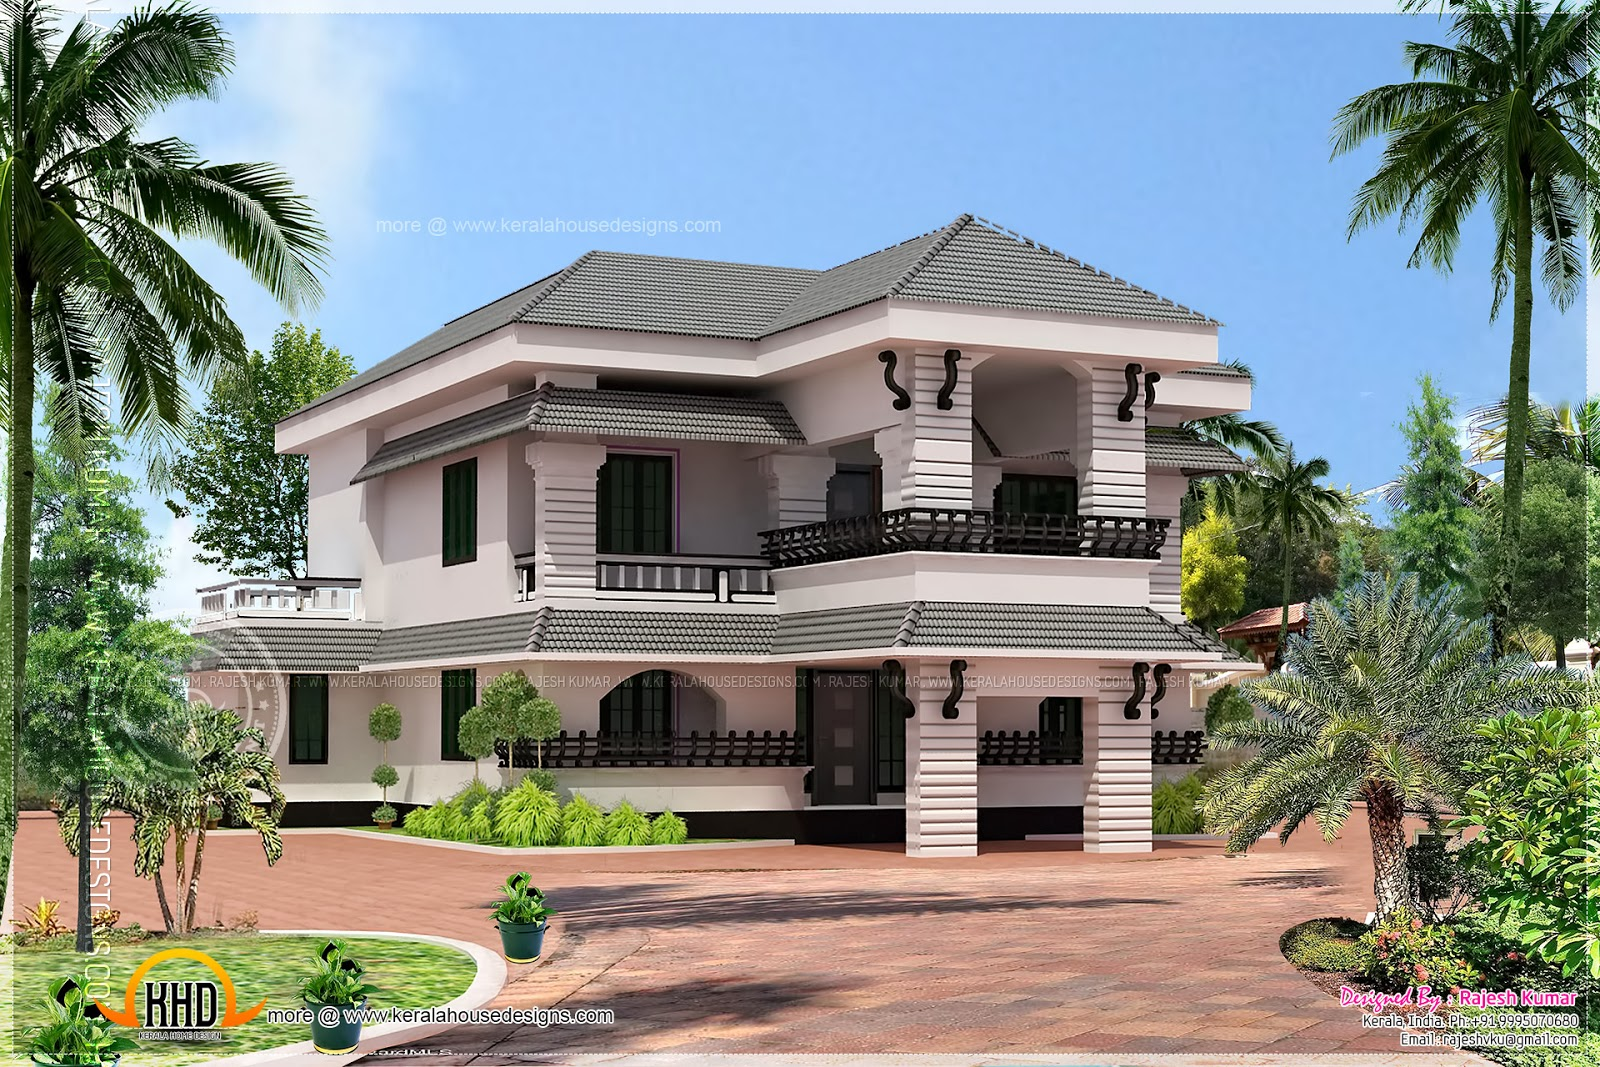 Malabar model home design kerala home design and floor plans for House models and plans